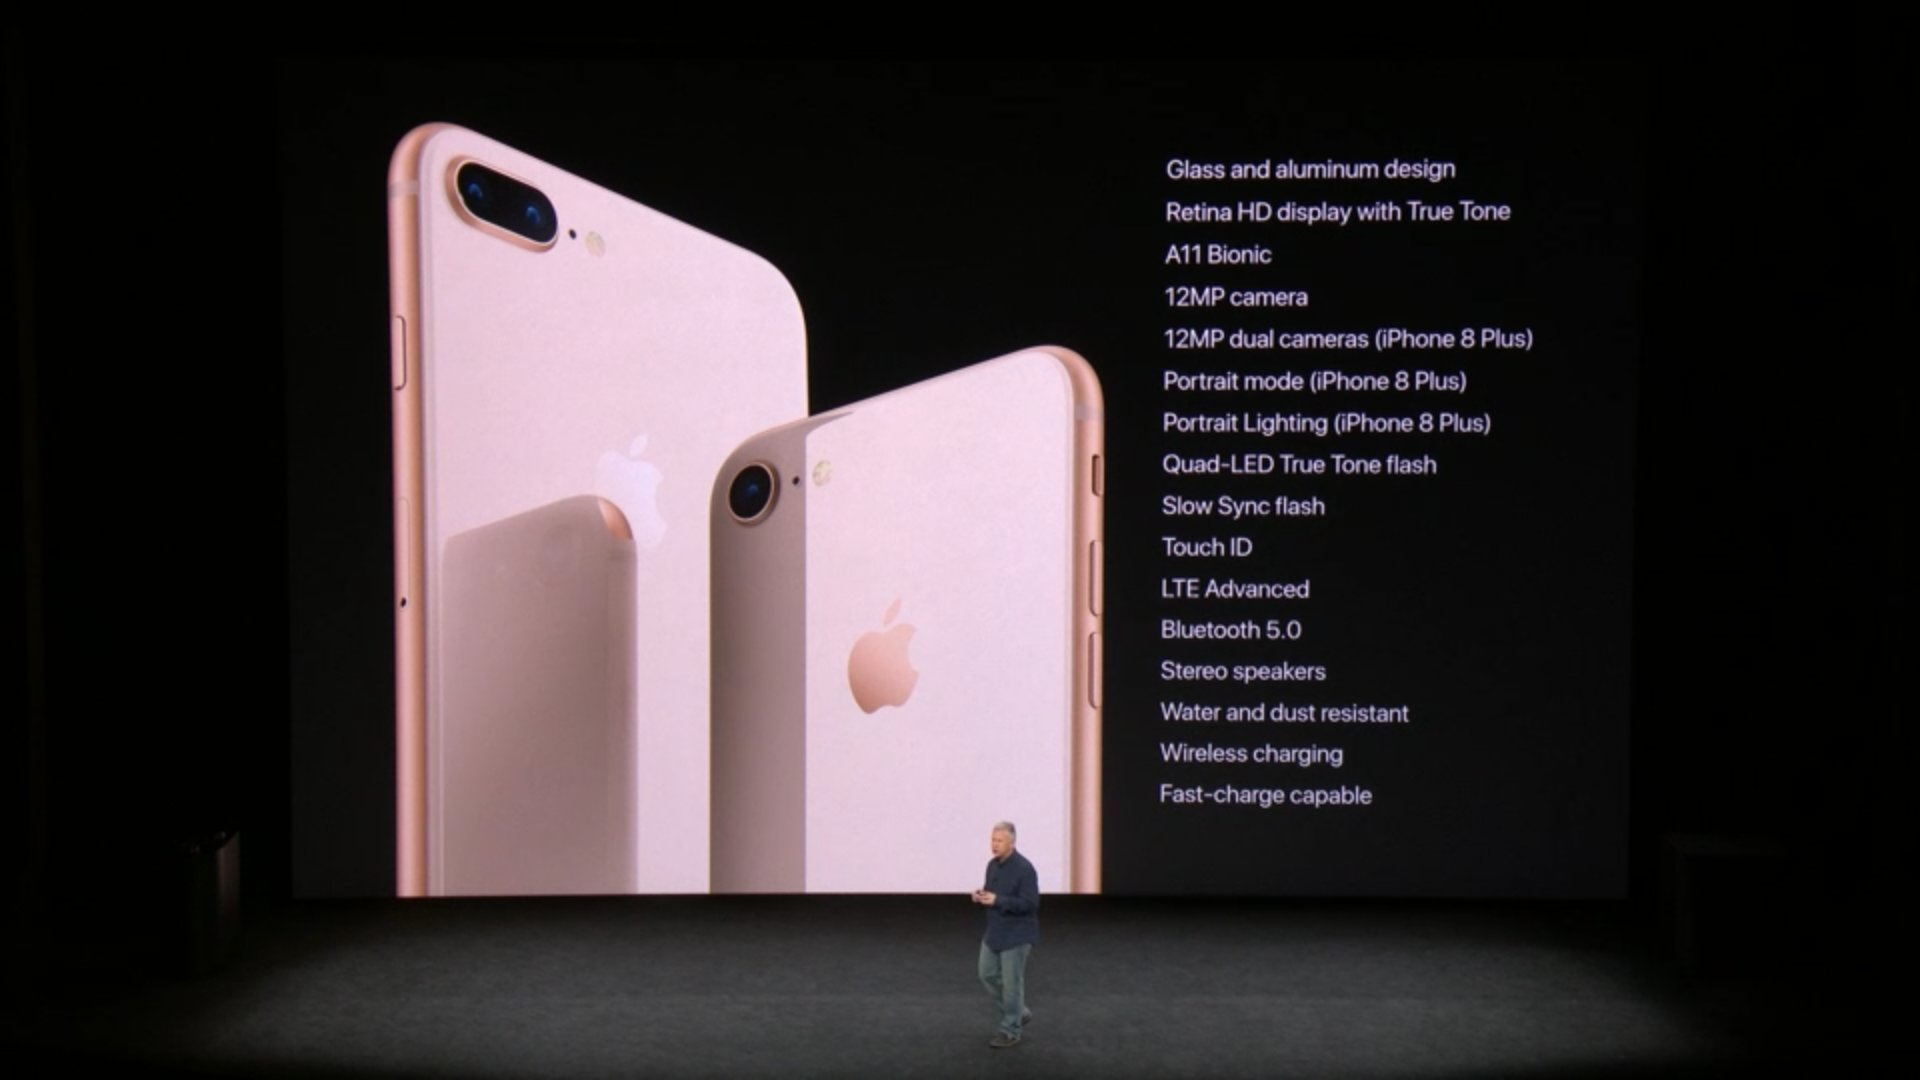 A rundown of the new features in the iPhone 8 and 8 Plus. #AppleEvent https://t.co/xgbr85elCX